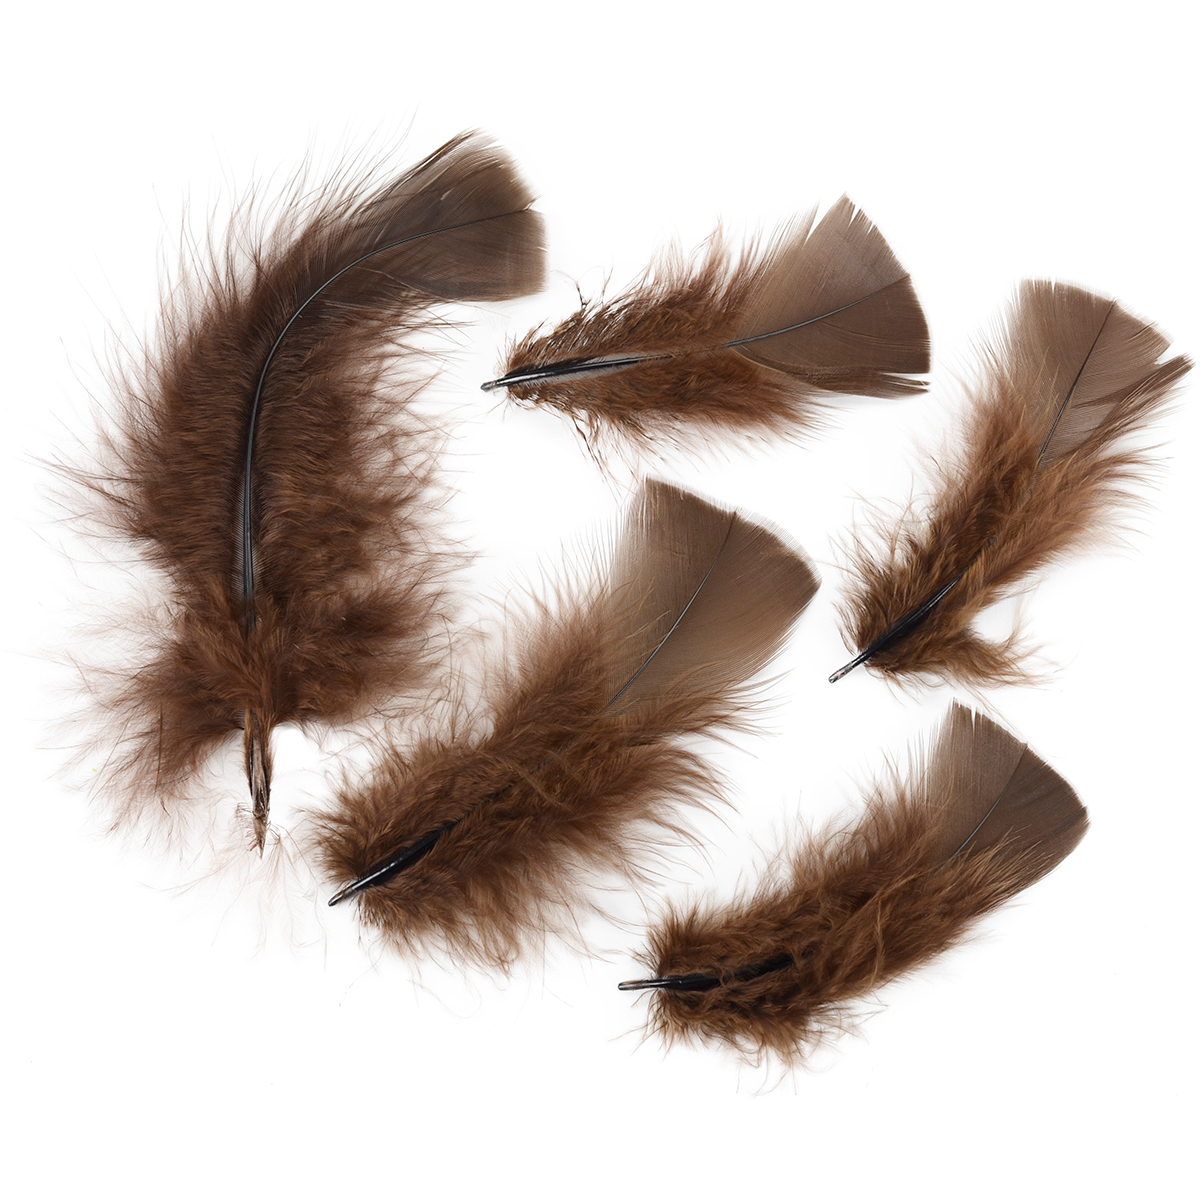 Turkey Plumage Feathers .5oz-Brown